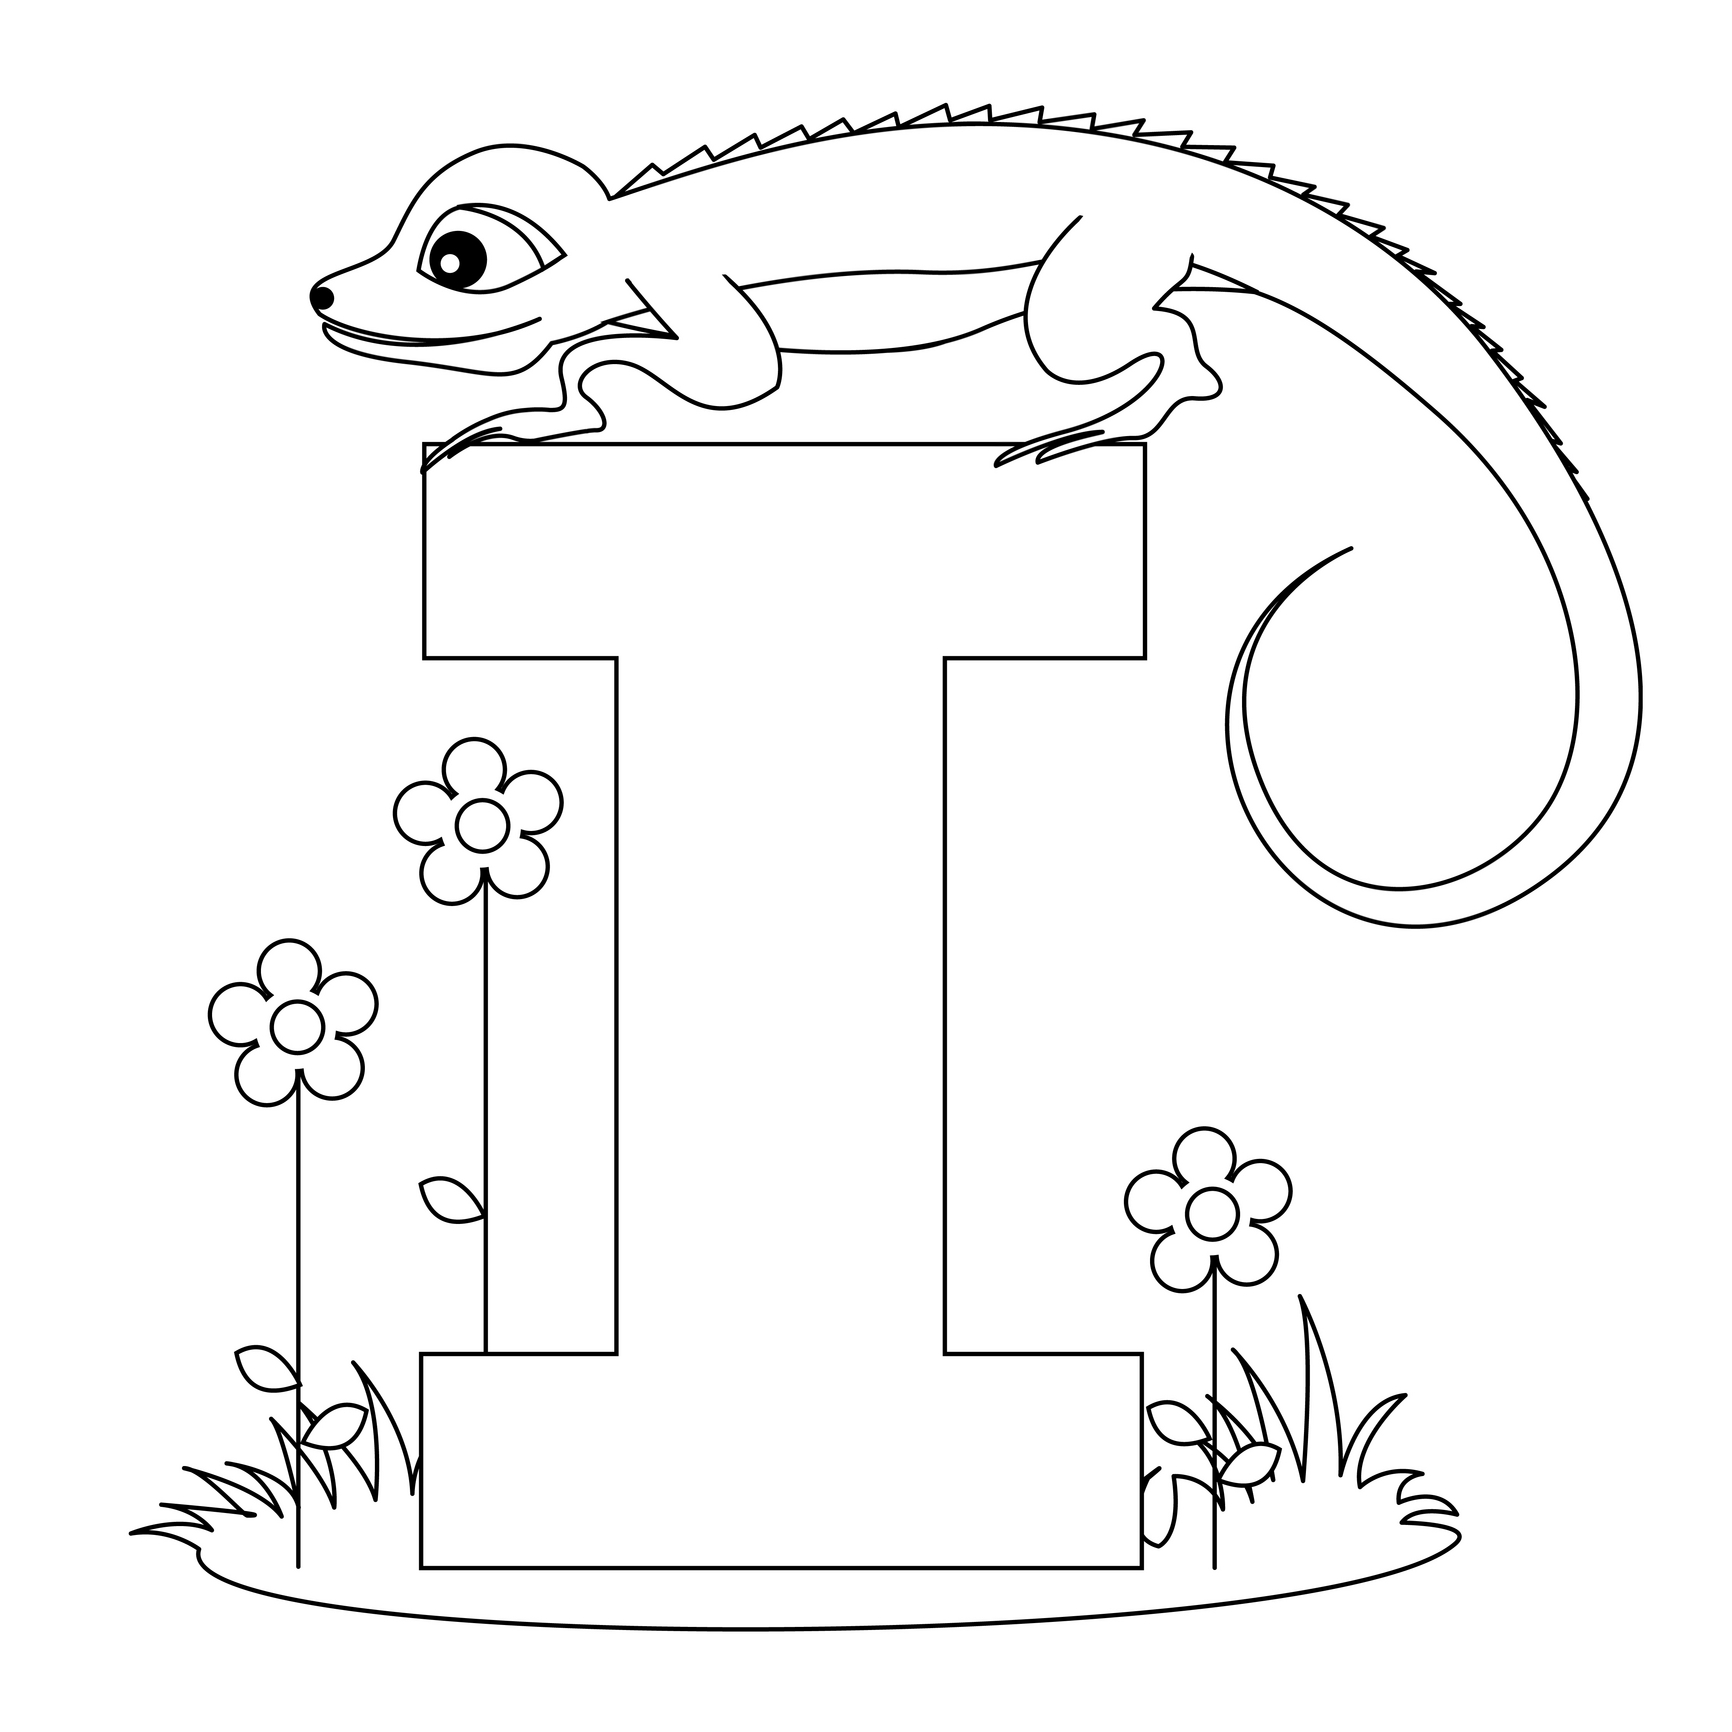 colouring pictures of alphabets printable alphabet worksheets letter i for iguana for of colouring alphabets pictures